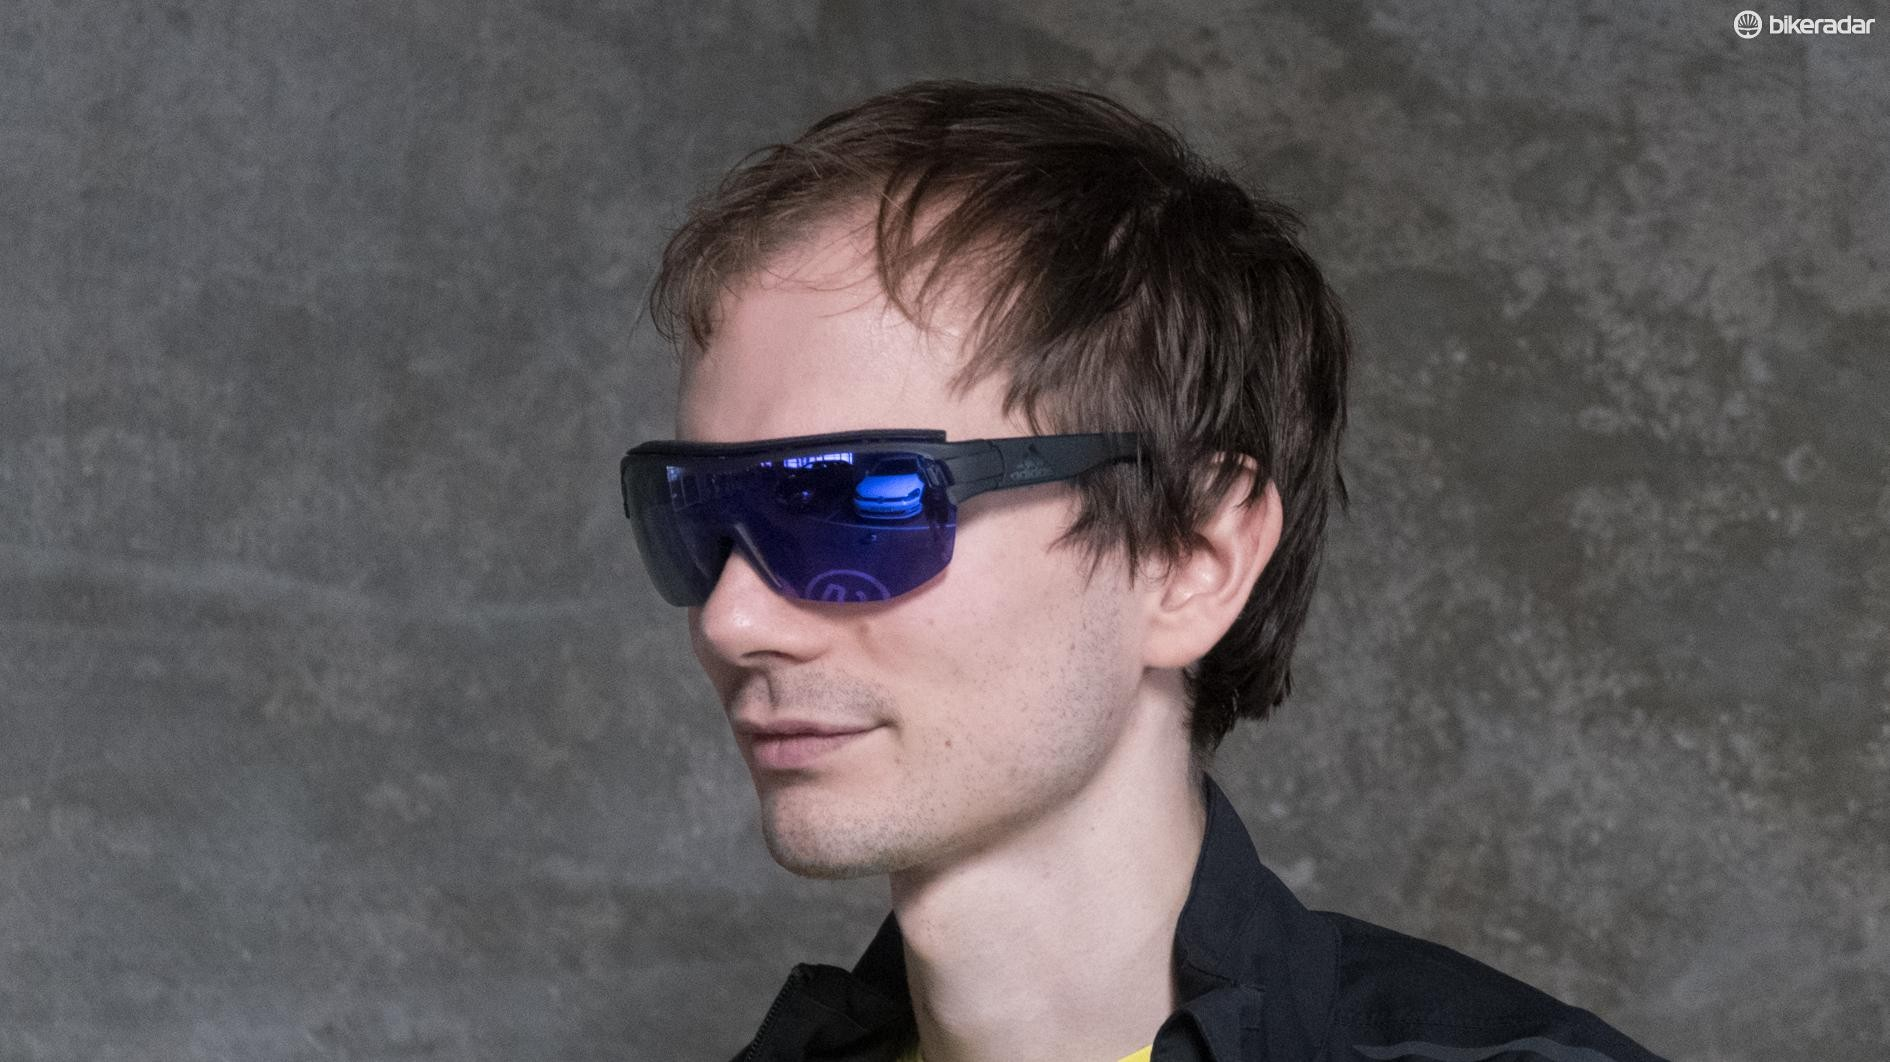 With Adidas' Zonyk Aero Pro glasses, you too could look as edgy and cool as Matthew Allen